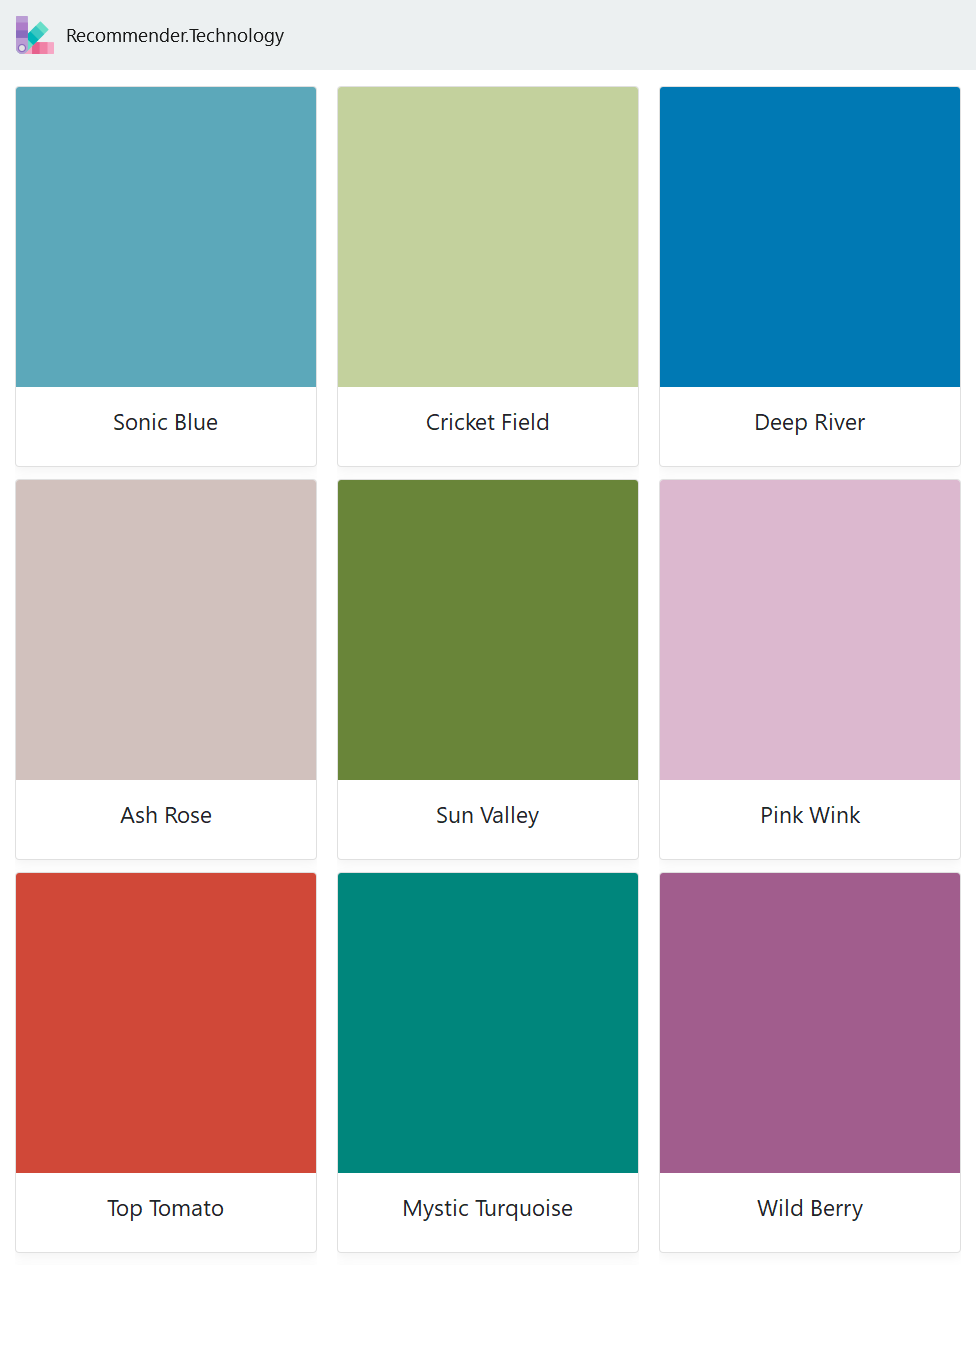 Sonic Blue Ash Rose Top Tomato Cricket Field Sun Valley Mystic Turquoise Deep River Pink Wink Wild Berry